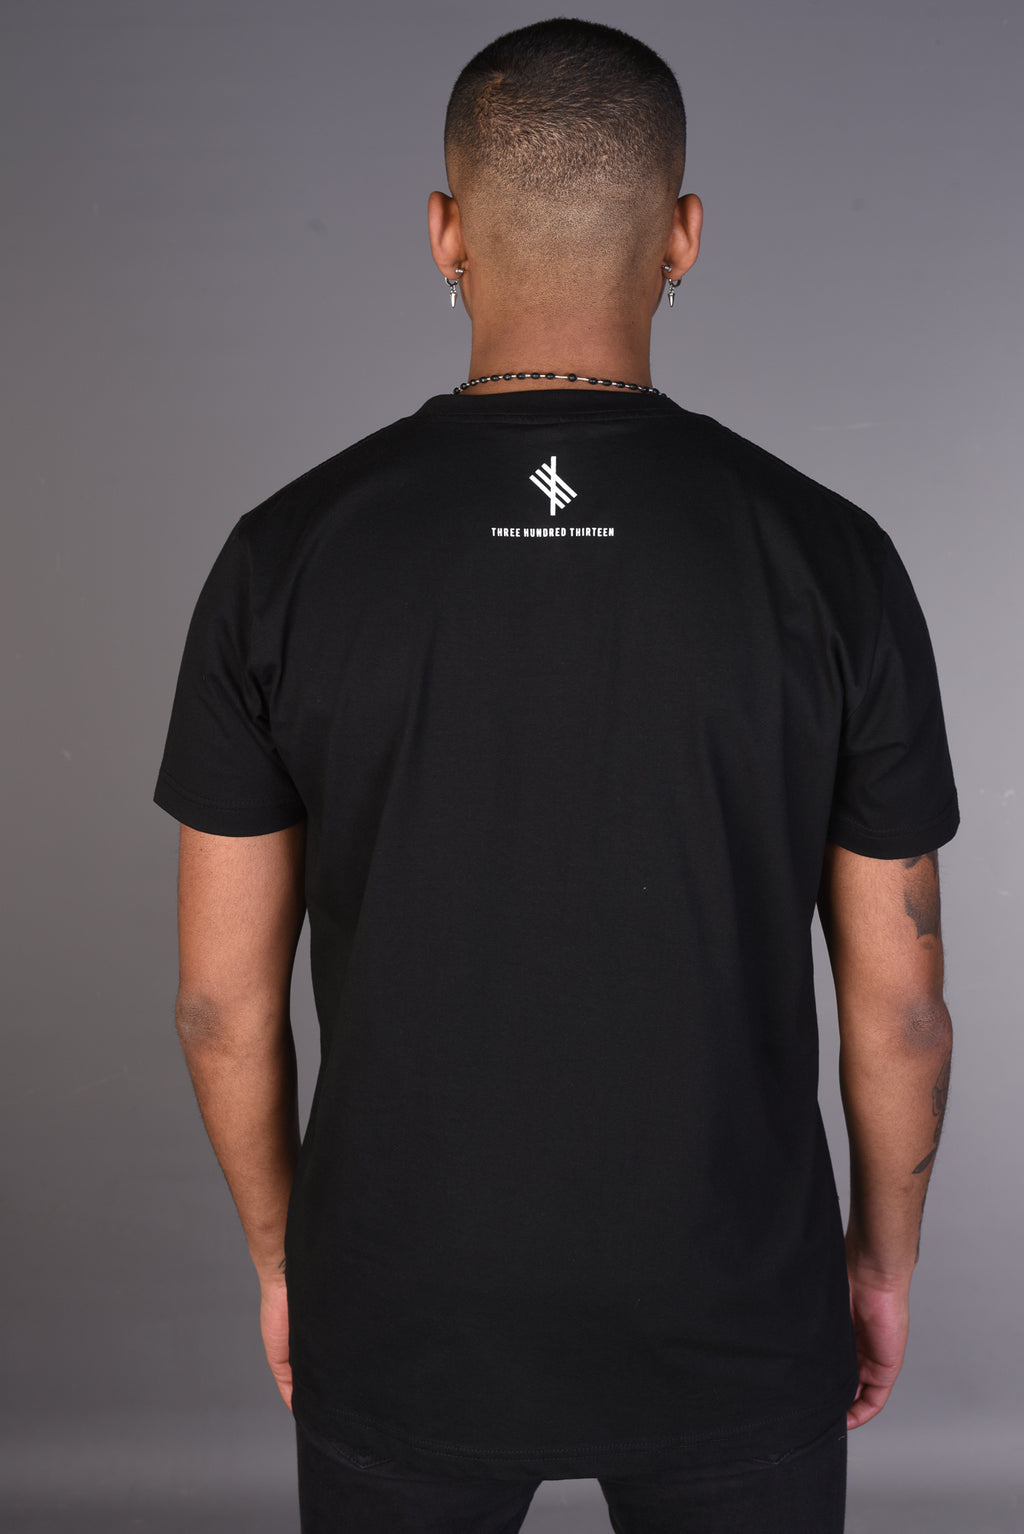 BADR T Shirt- Black with White Print